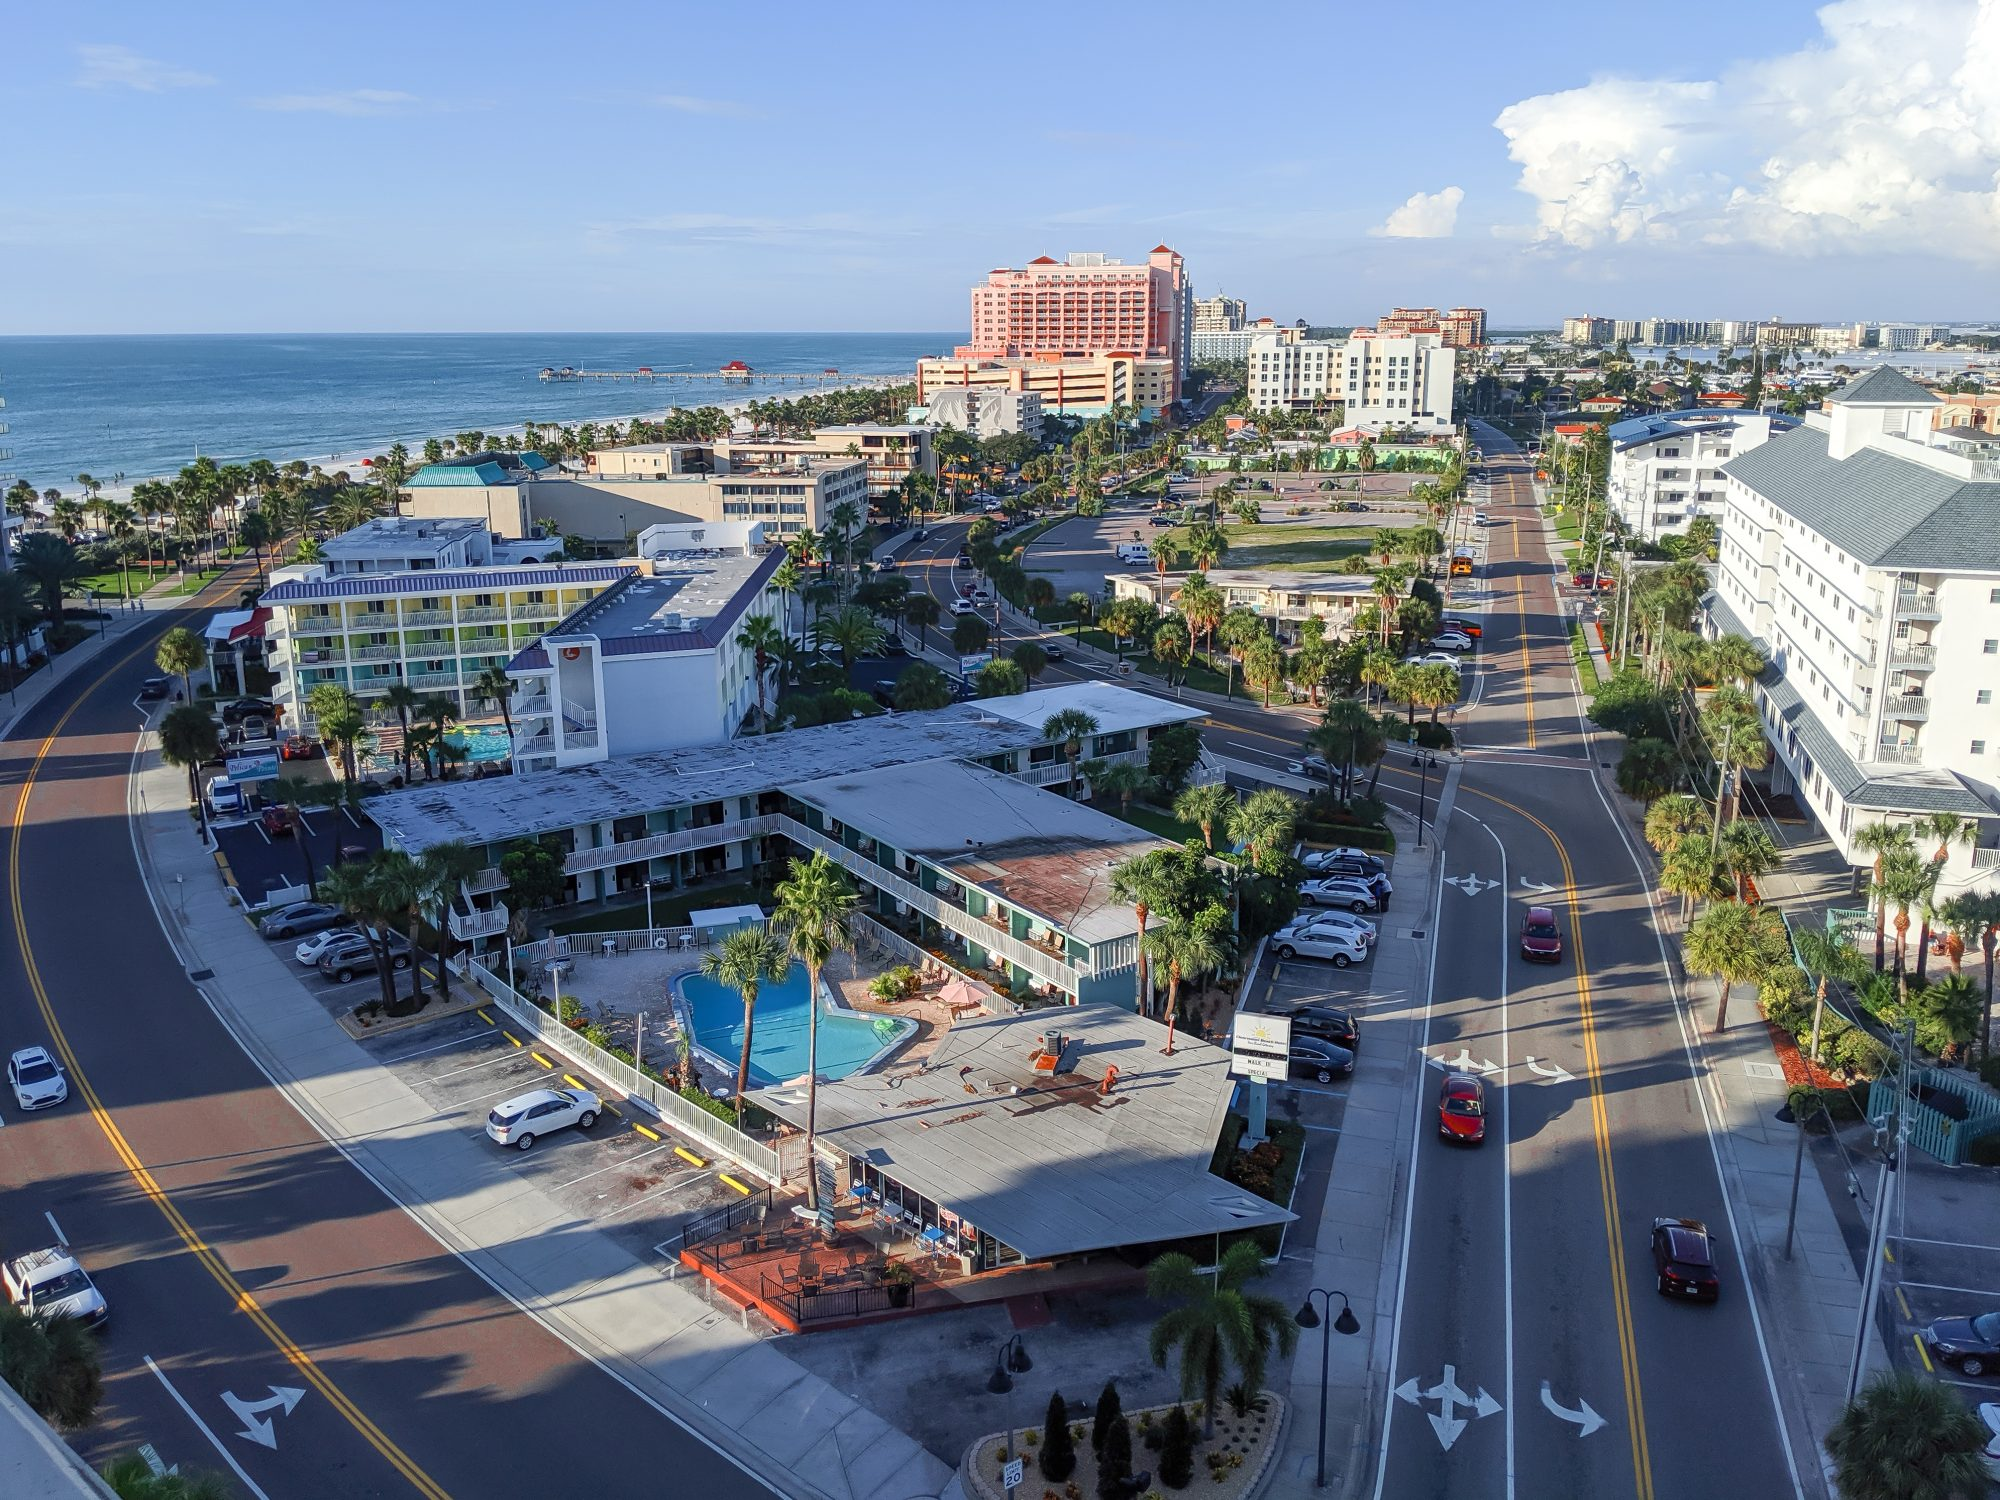 My 5 Favorite Ways I Spend a Weekend in Clearwater, Florida | Clearwater Beach, Clearwater Marine Aquarium, kayaking, eating and drinking, baseball #clearwater #florida #clearwaterbeach